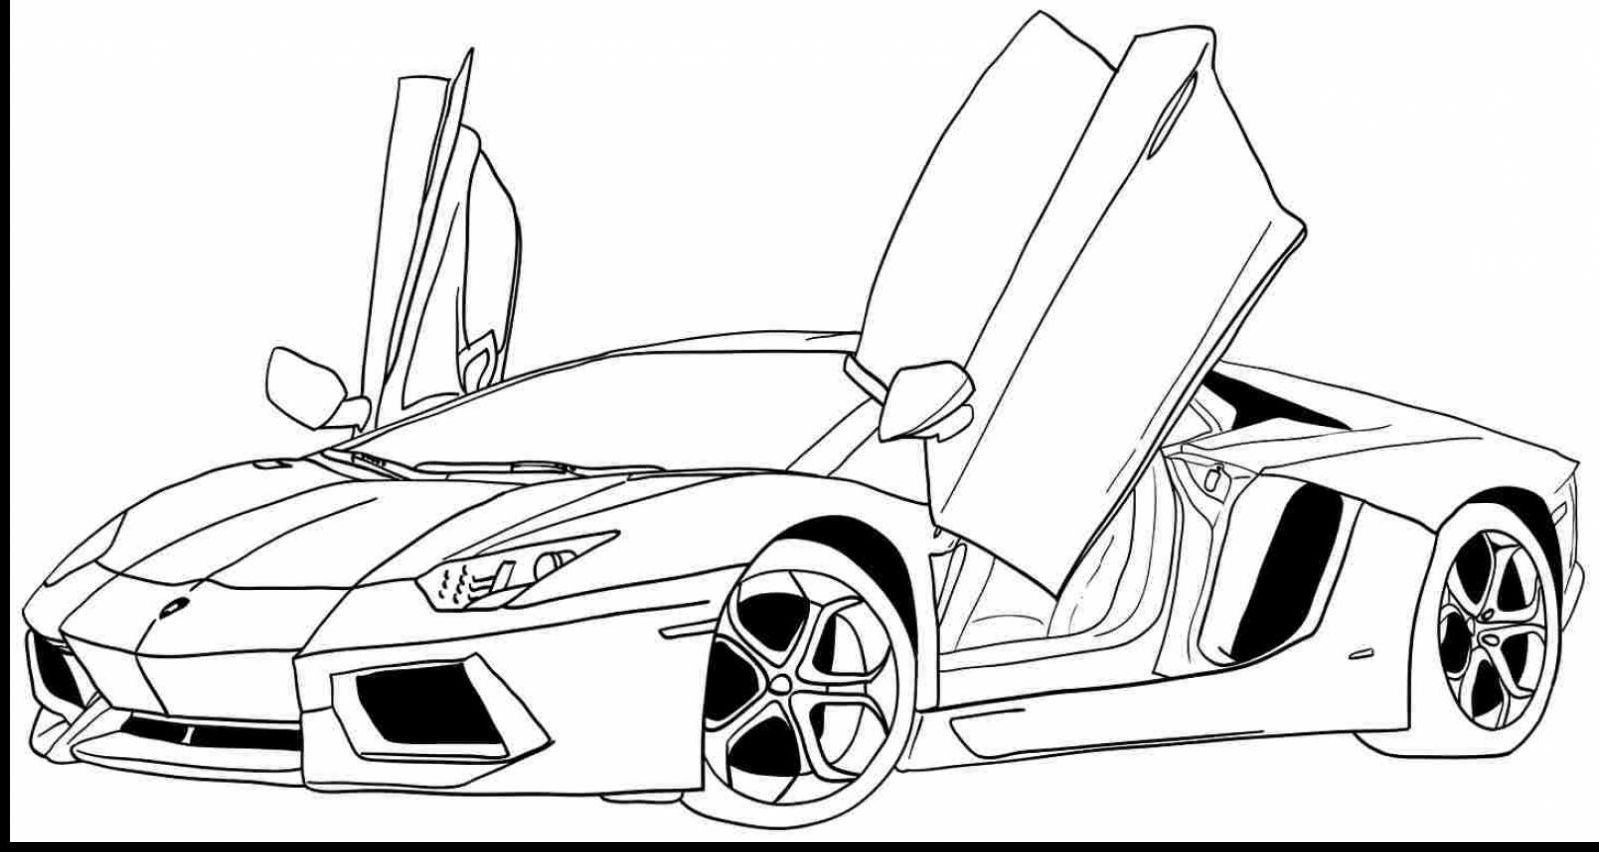 Sports Car Coloring Pages Sports Coloring Pages Race Car Coloring Pages Coloring Pages For Boys